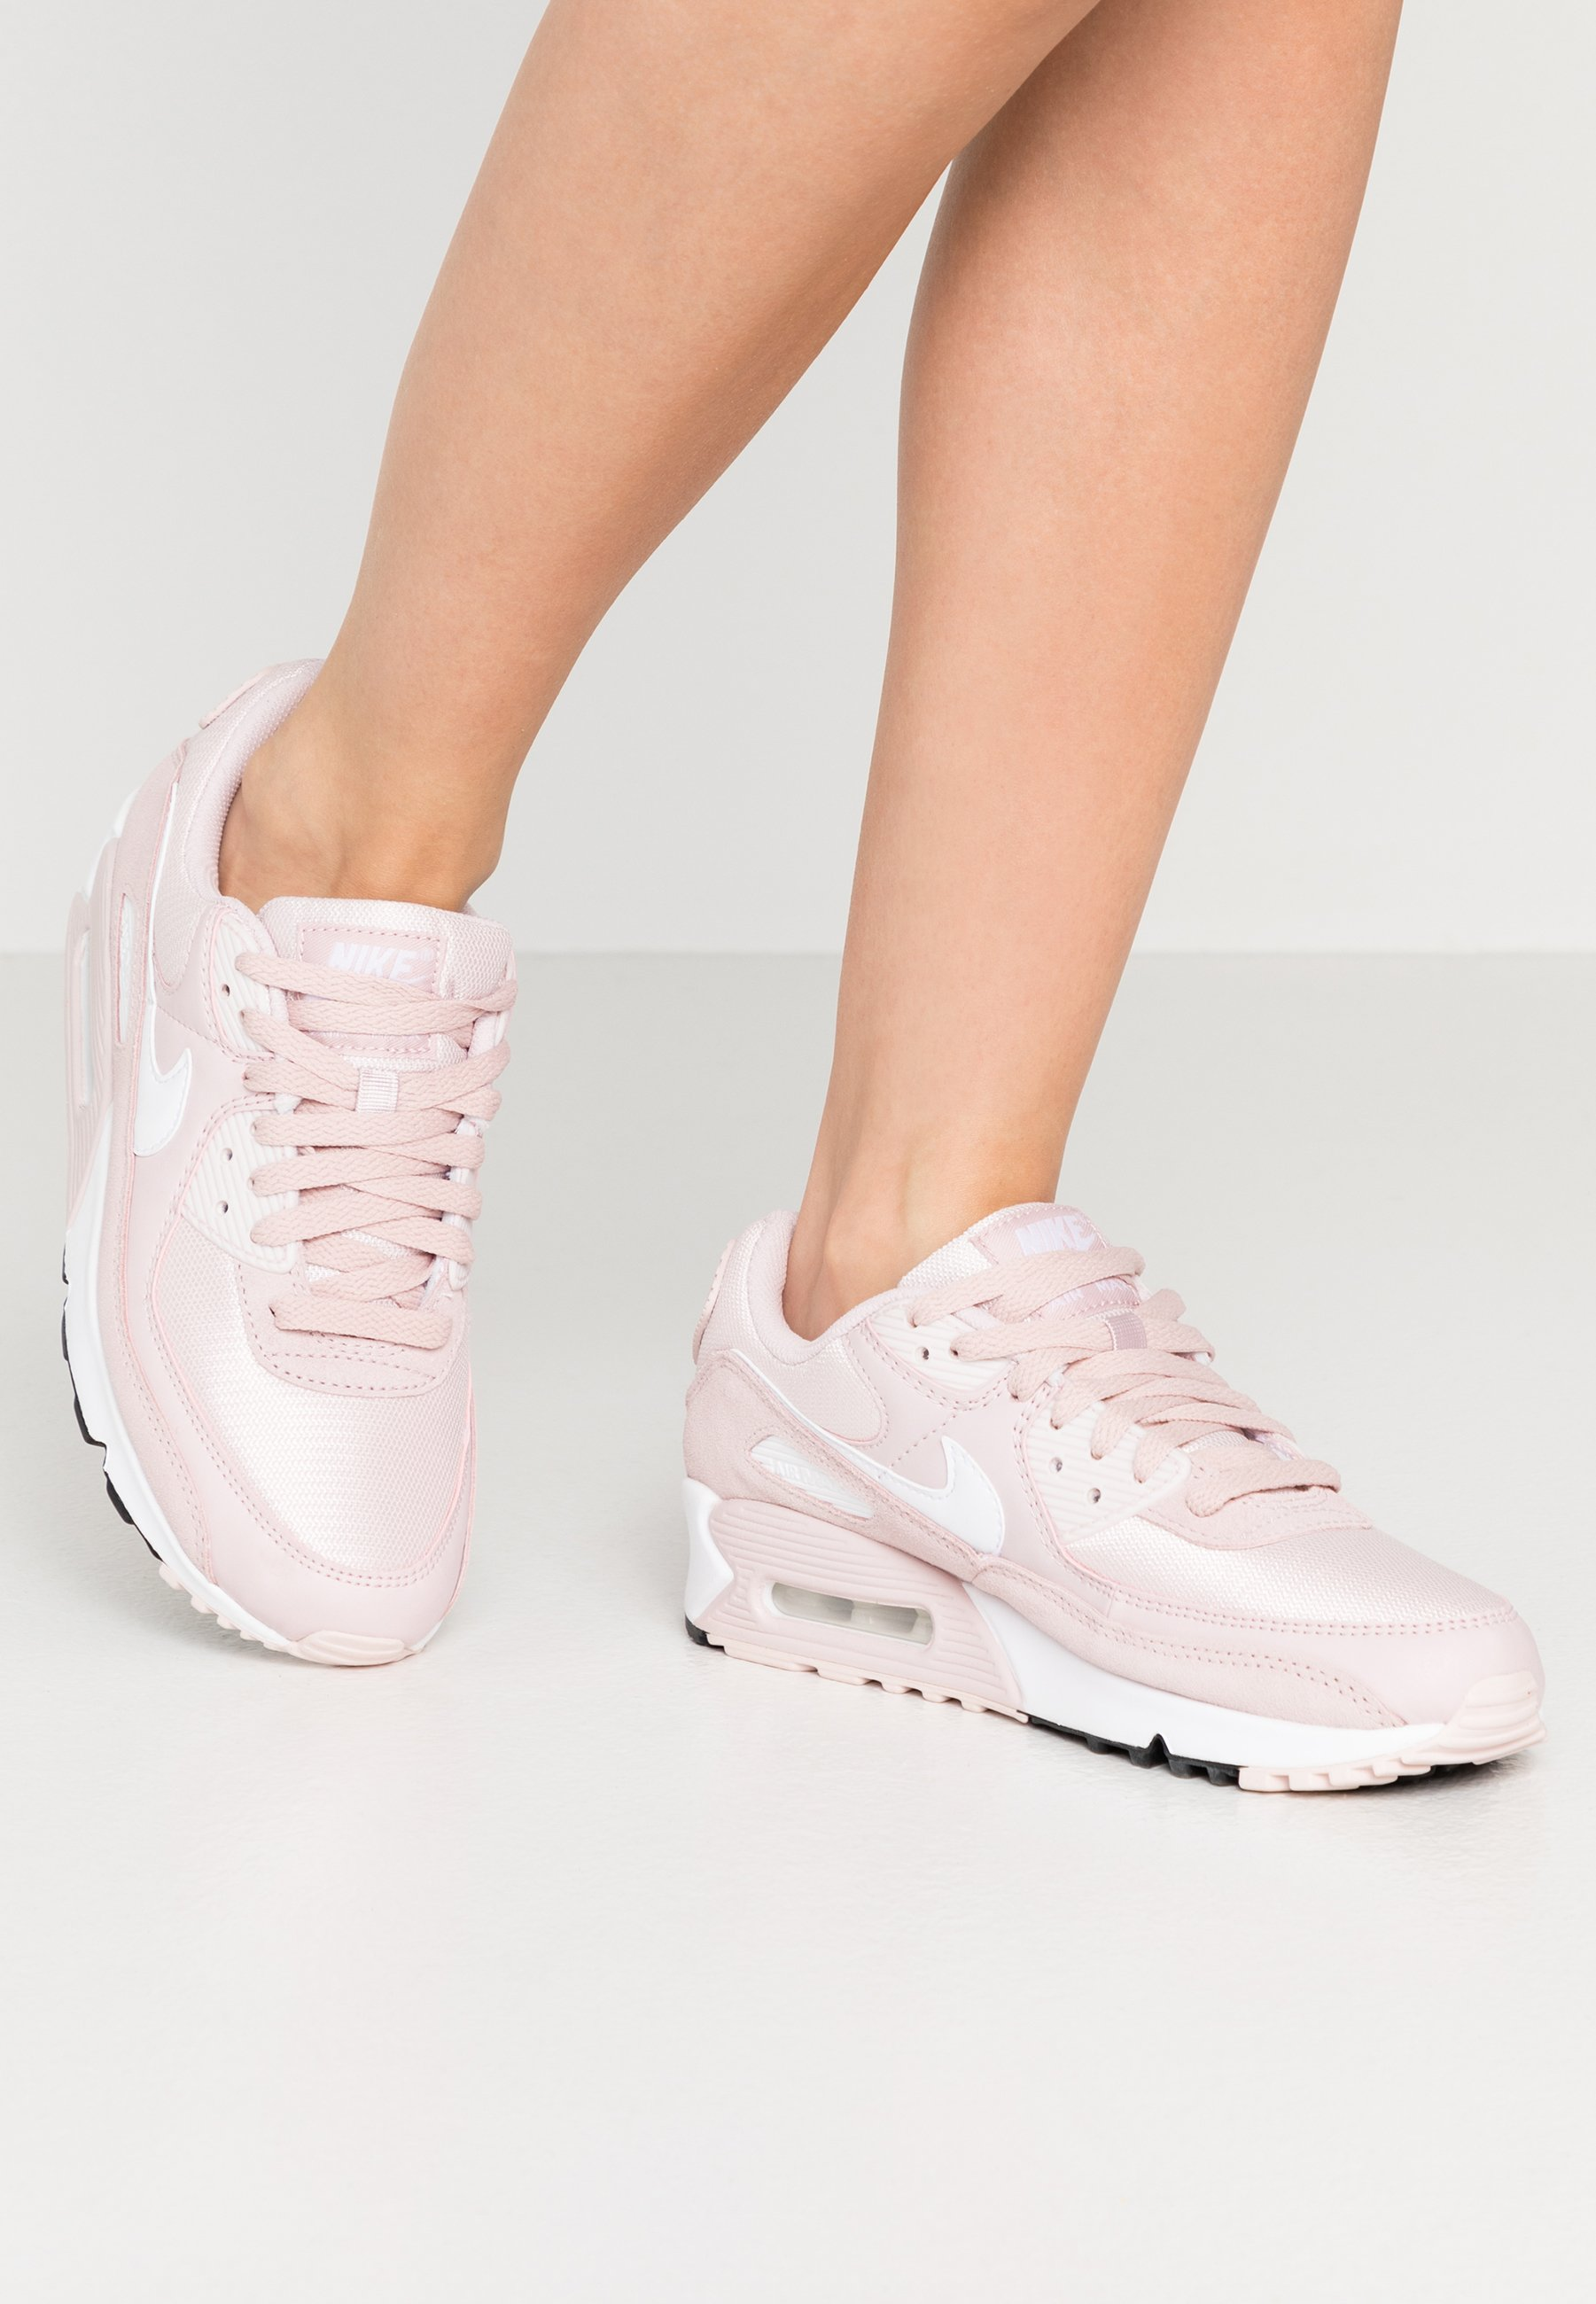 mudo Masculinidad pómulo  Nike Sportswear AIR MAX 90 - Trainers - barely rose/white/black/light pink  - Zalando.co.uk